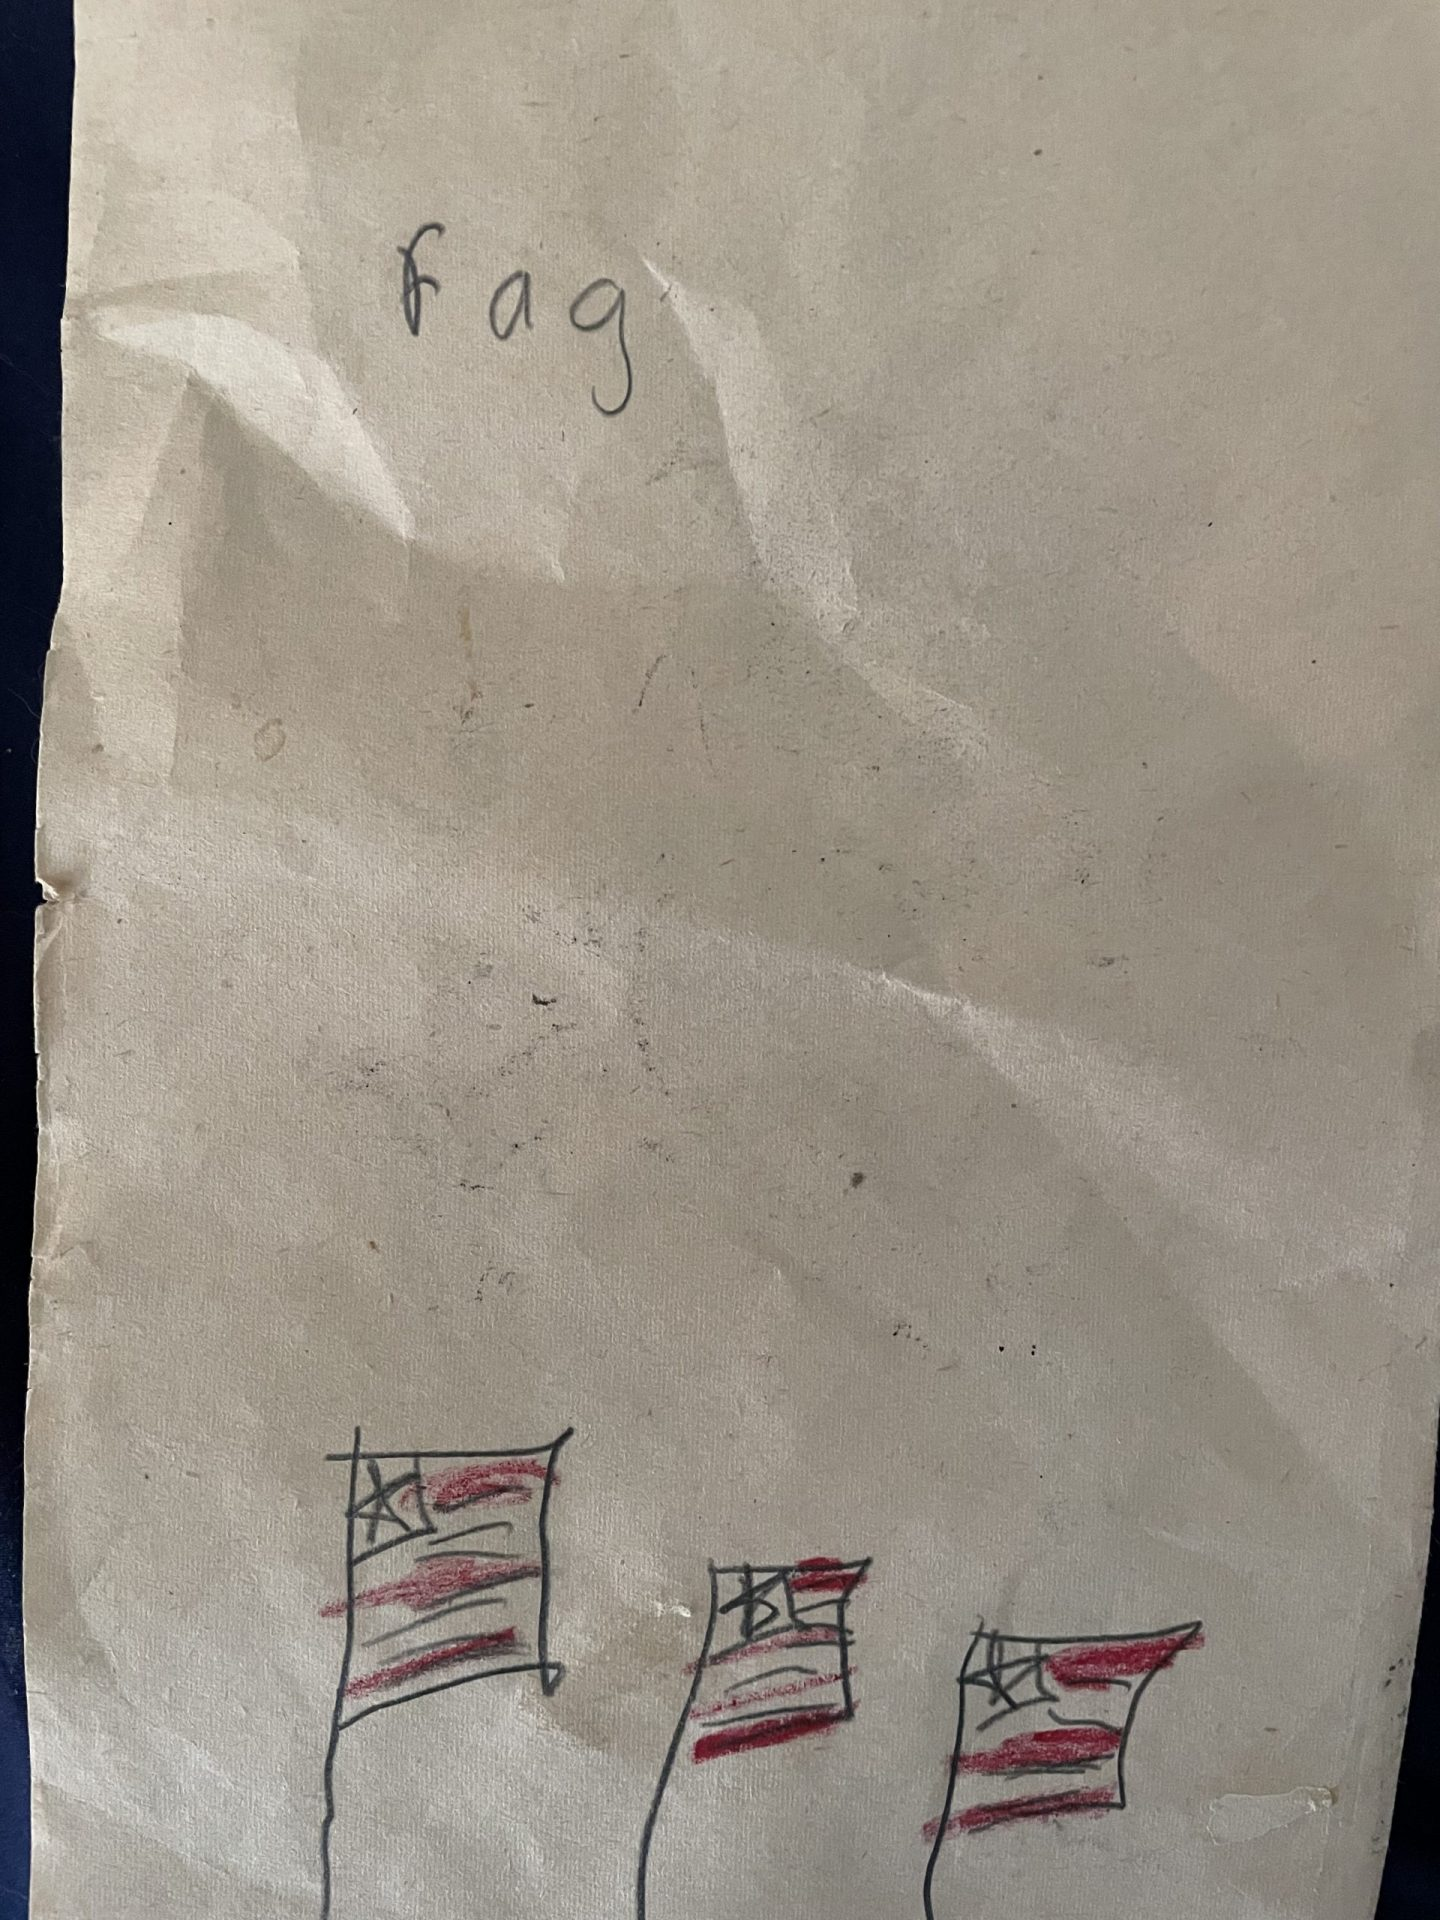 """4 yo child's picture of flags and labeled """"fag"""""""